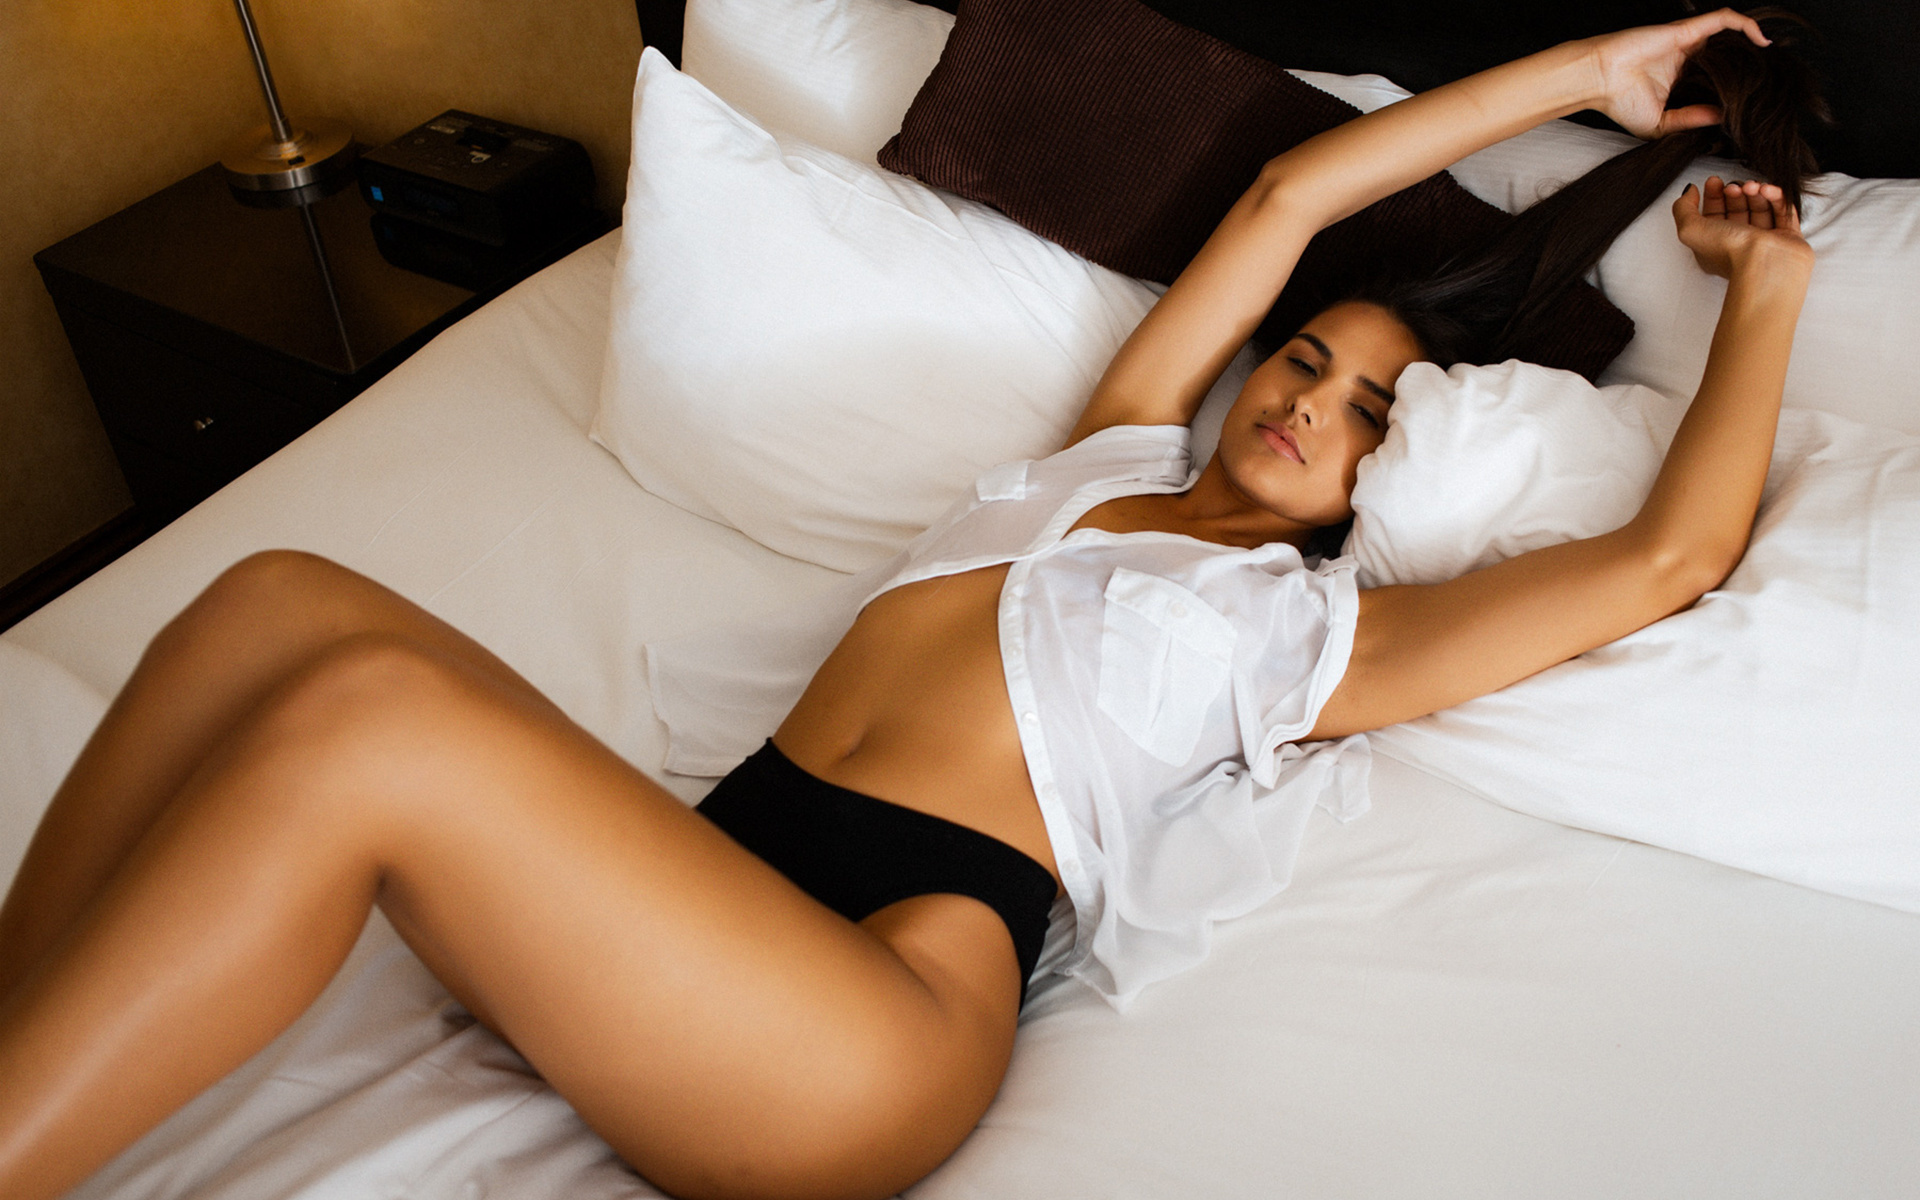 body-woman-in-bed-x-x